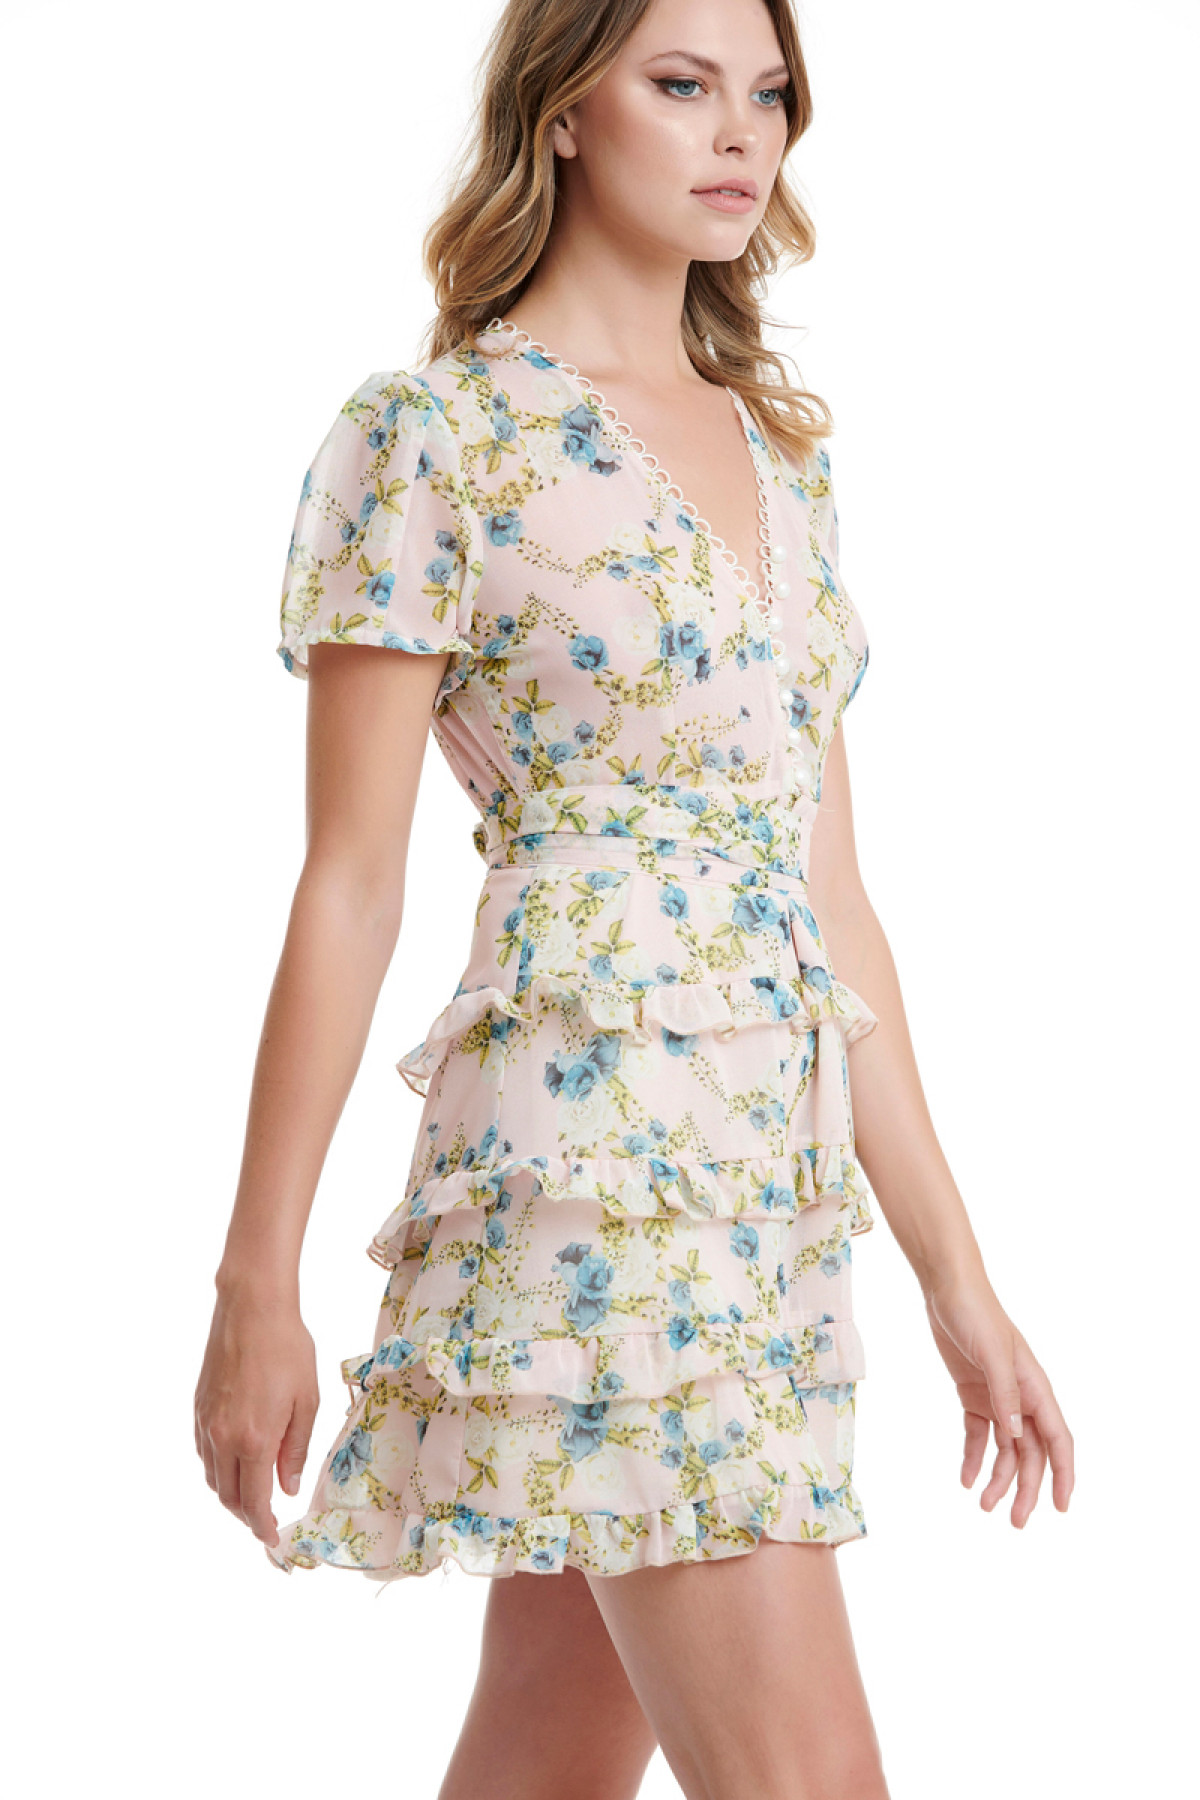 MINI FLORAL CHIFFON DRESS